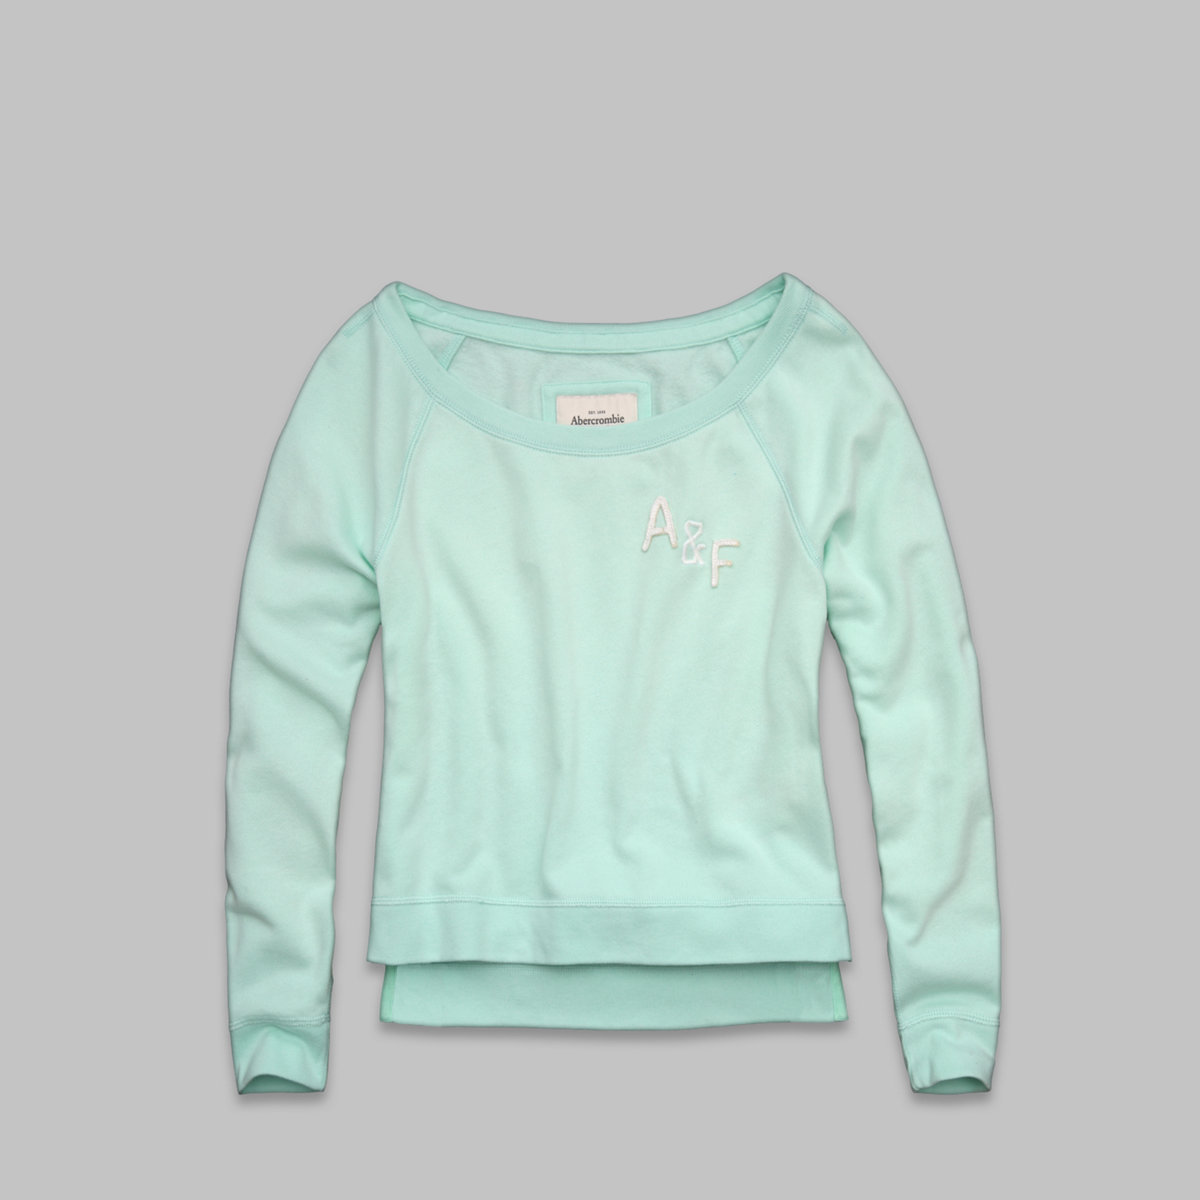 April Sweatshirt